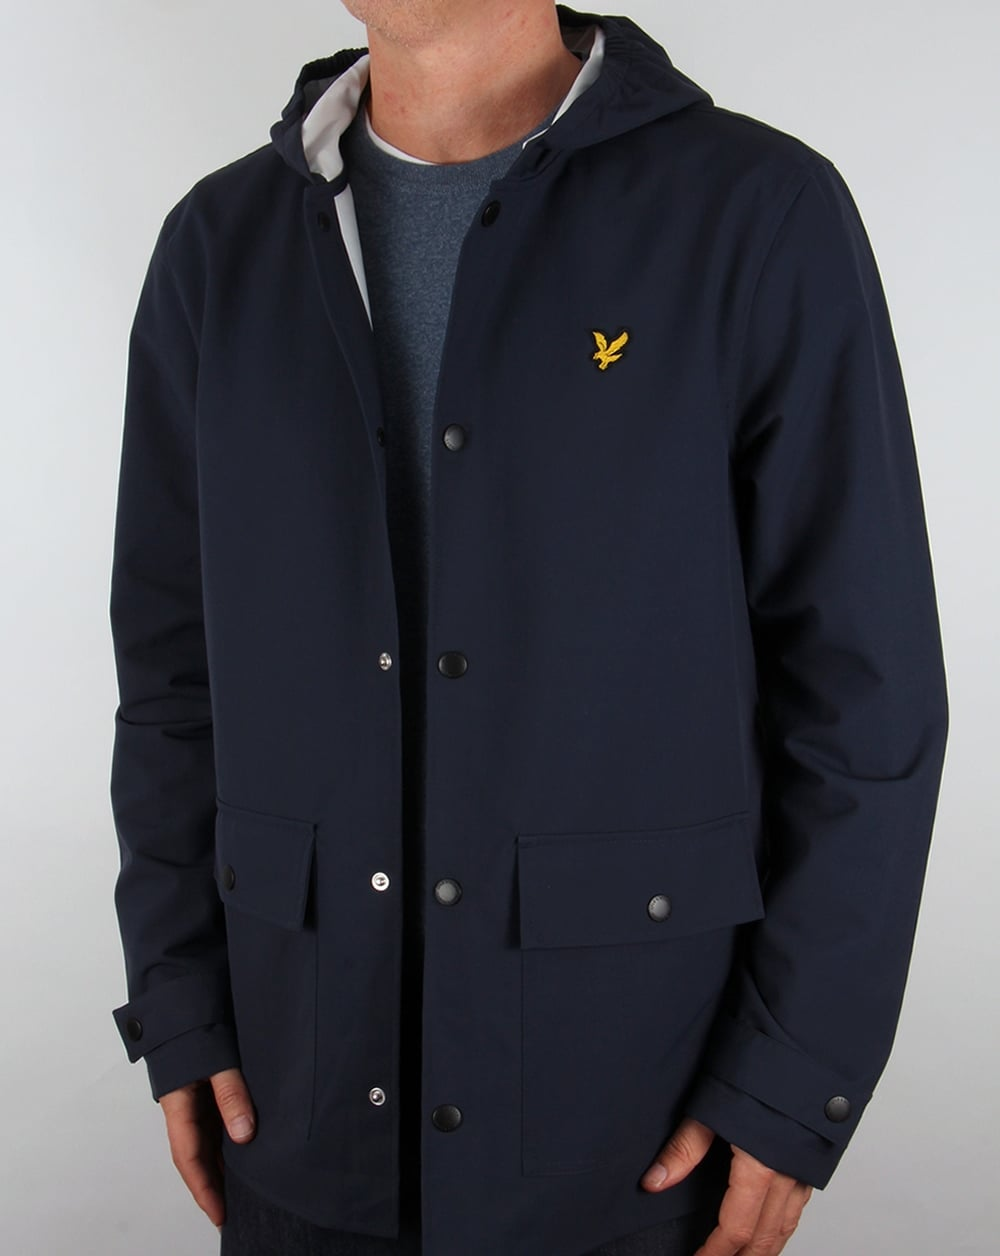 lyle and scott raincoat navy jacket mens green coat. Black Bedroom Furniture Sets. Home Design Ideas